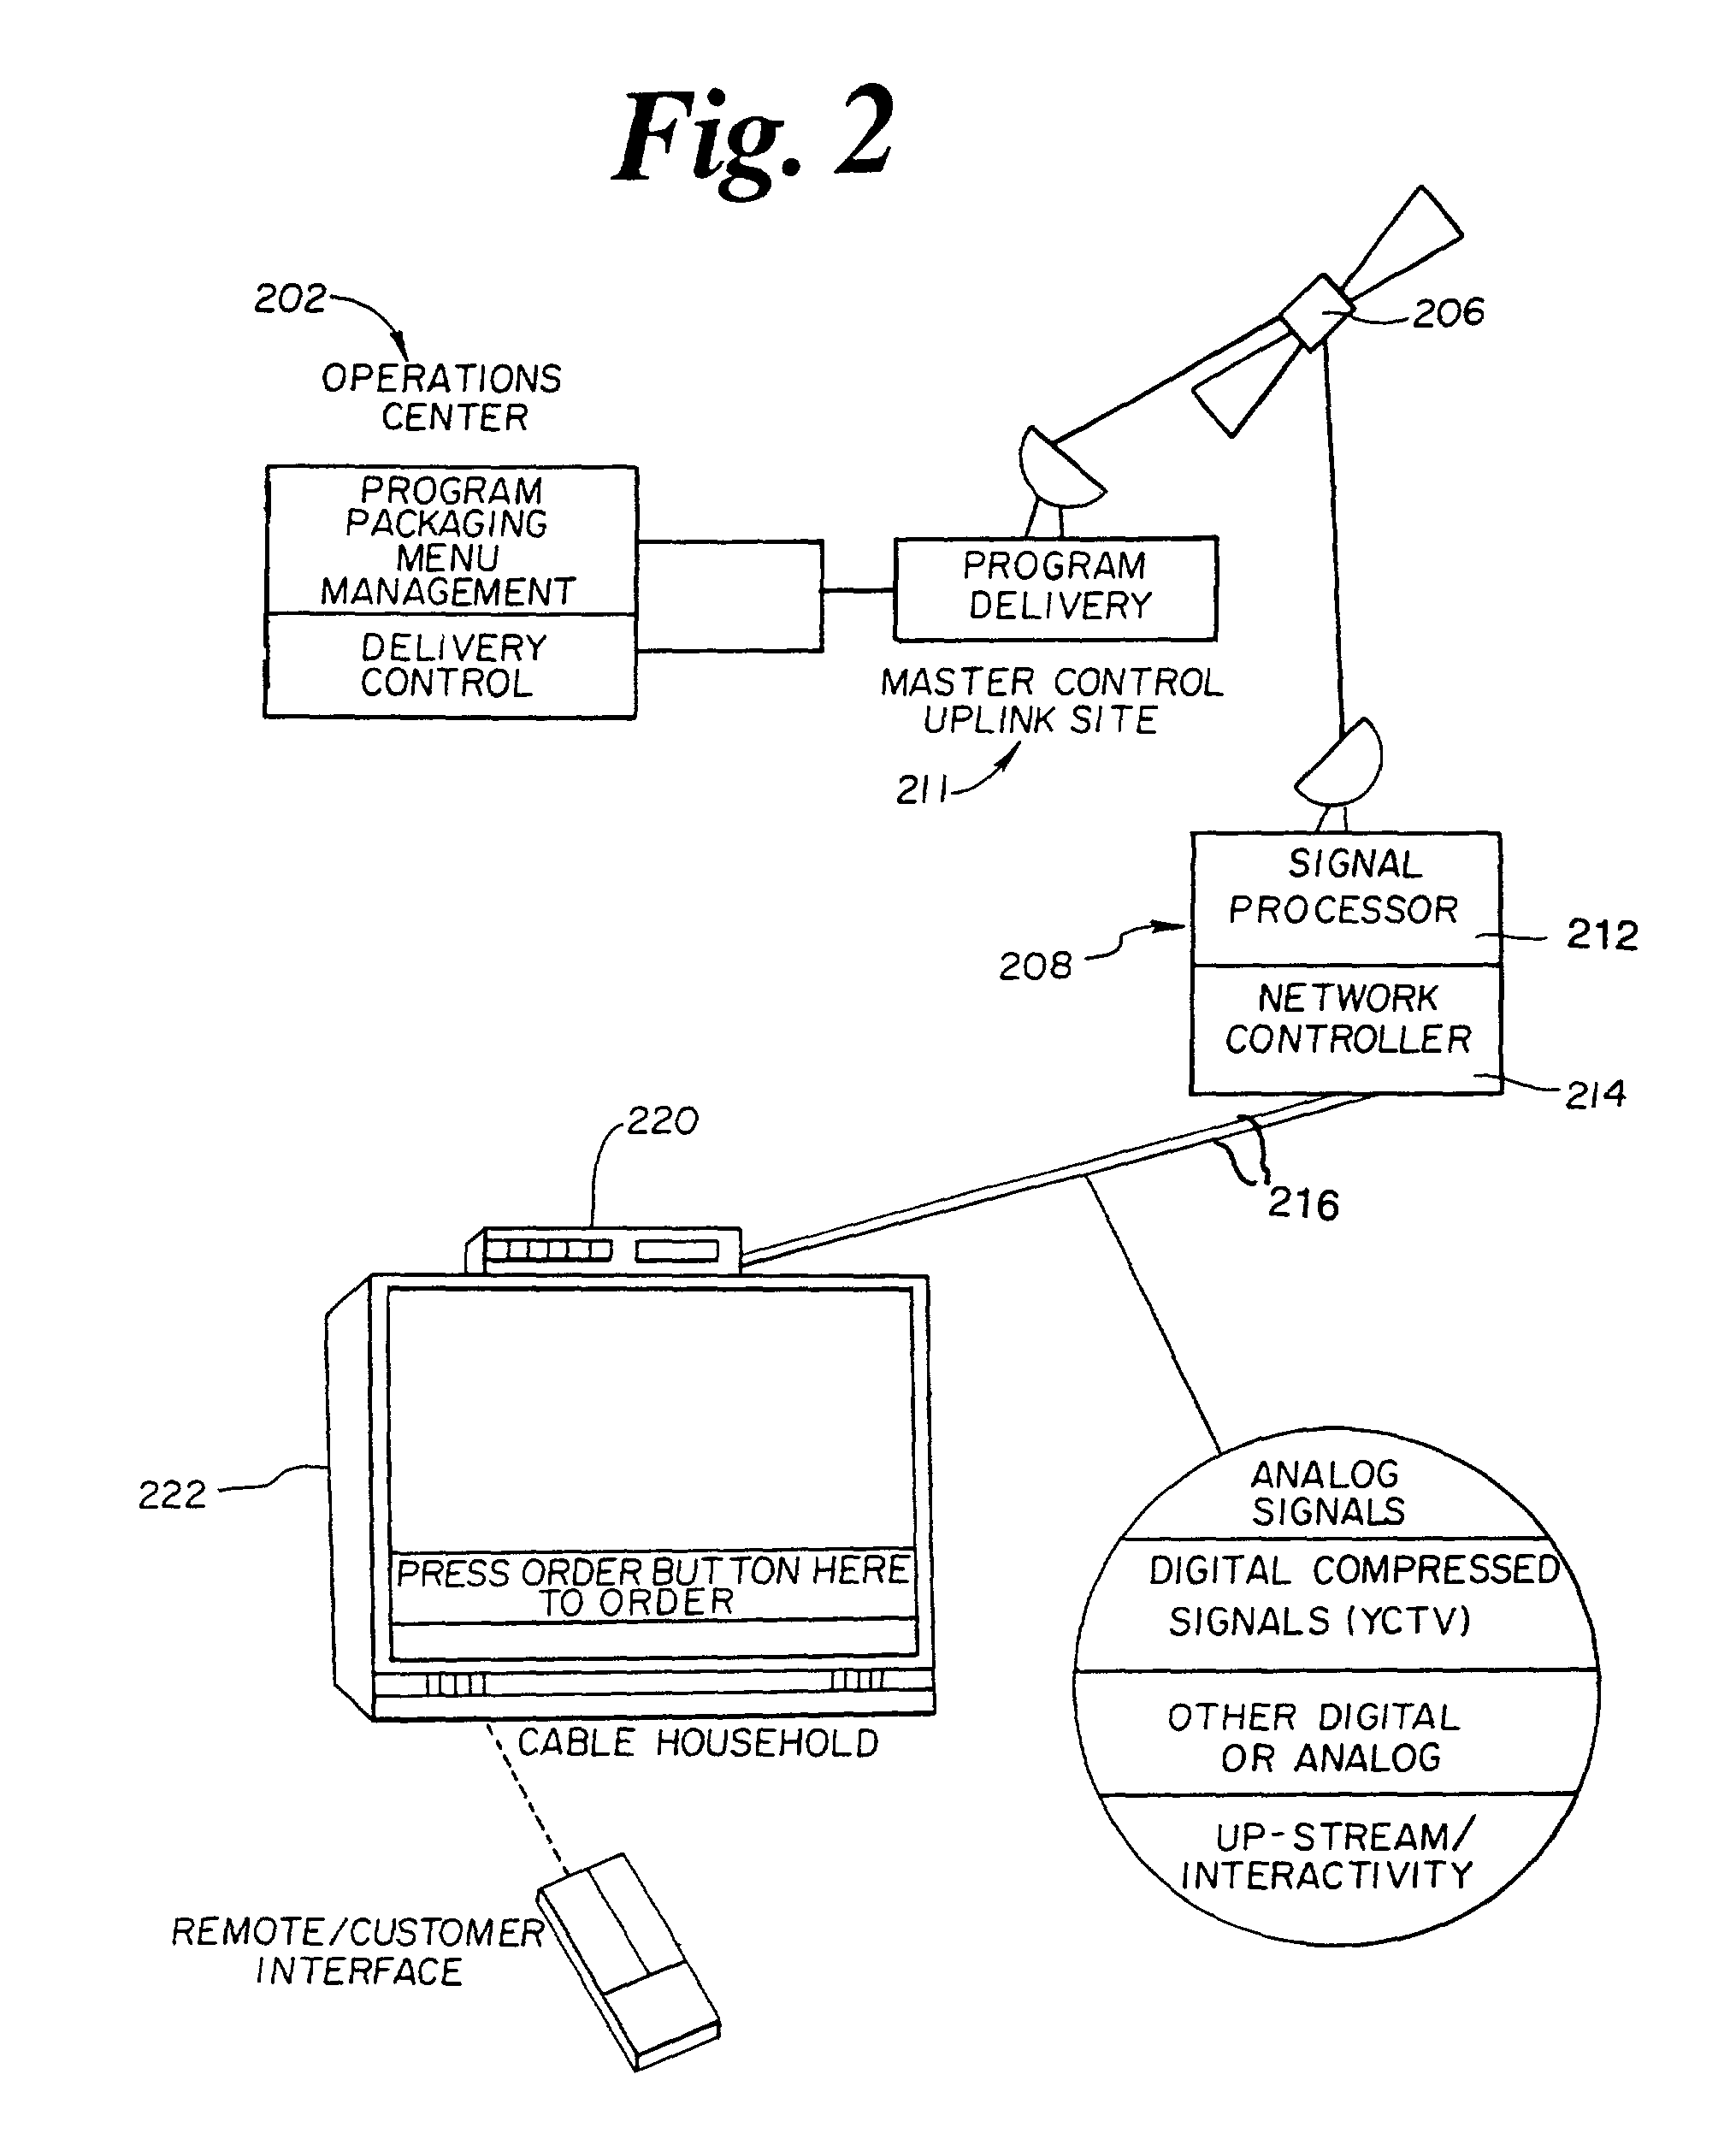 Us7770196b1 set top terminal for organizing program options available in television delivery system patents